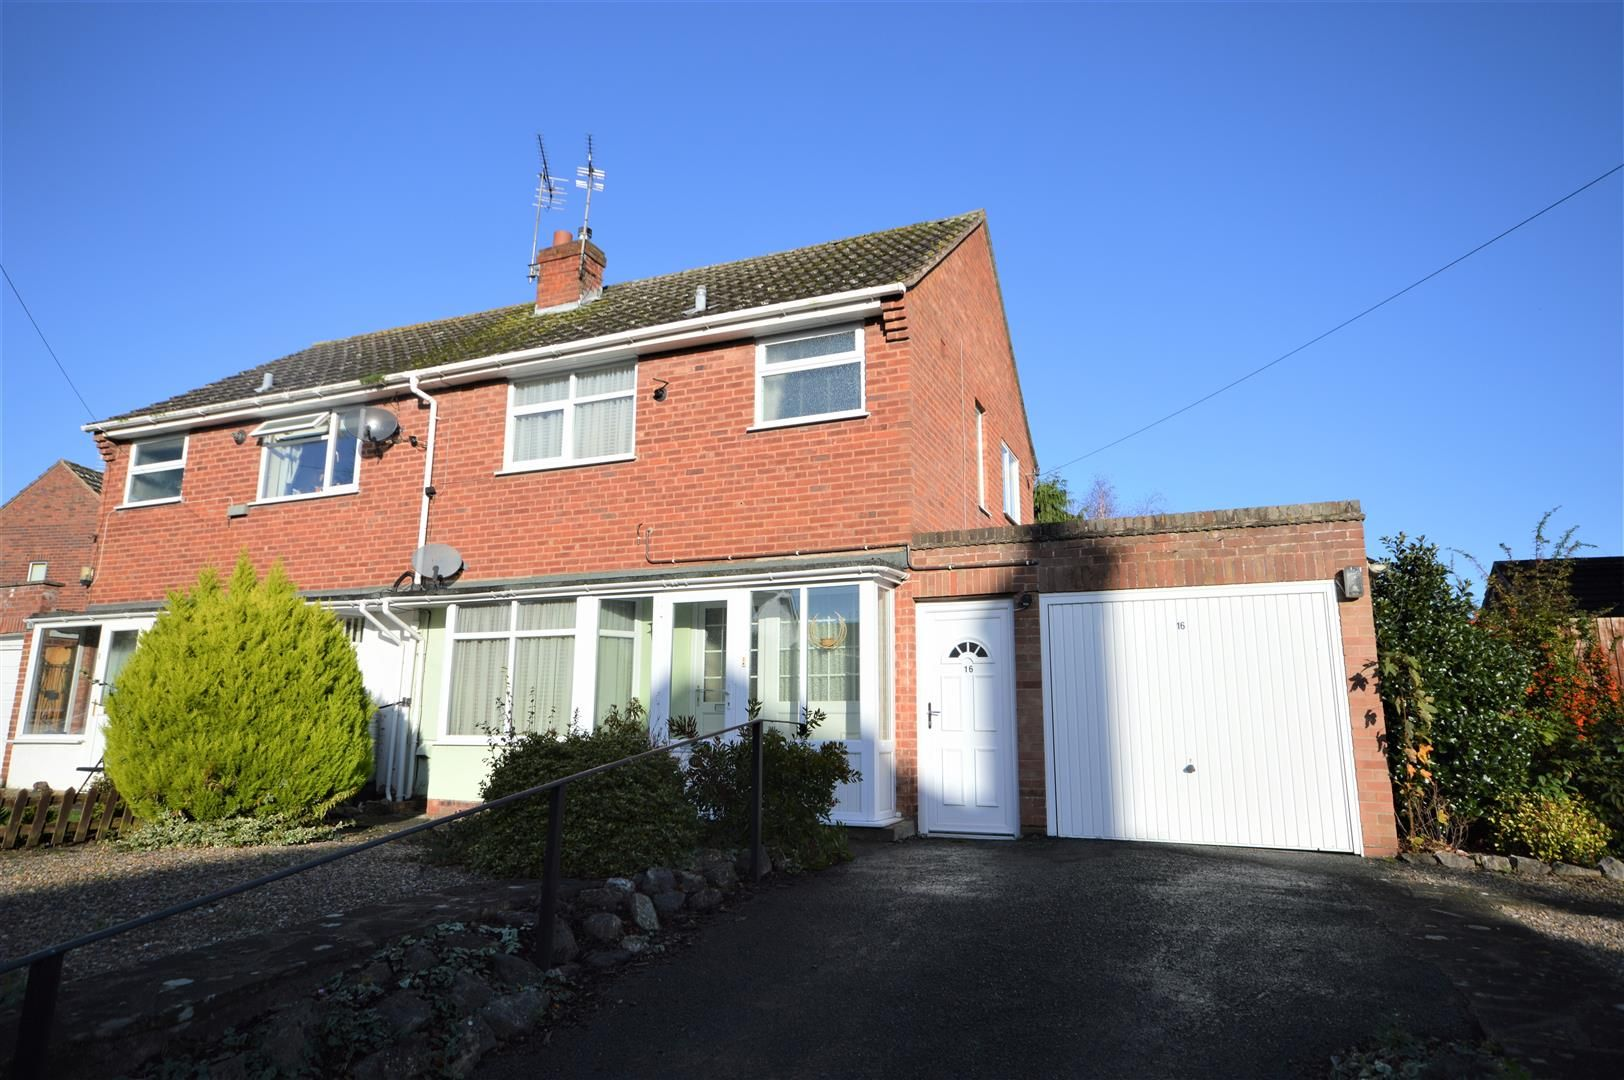 3 bed semi-detached for sale in Leominster, HR6